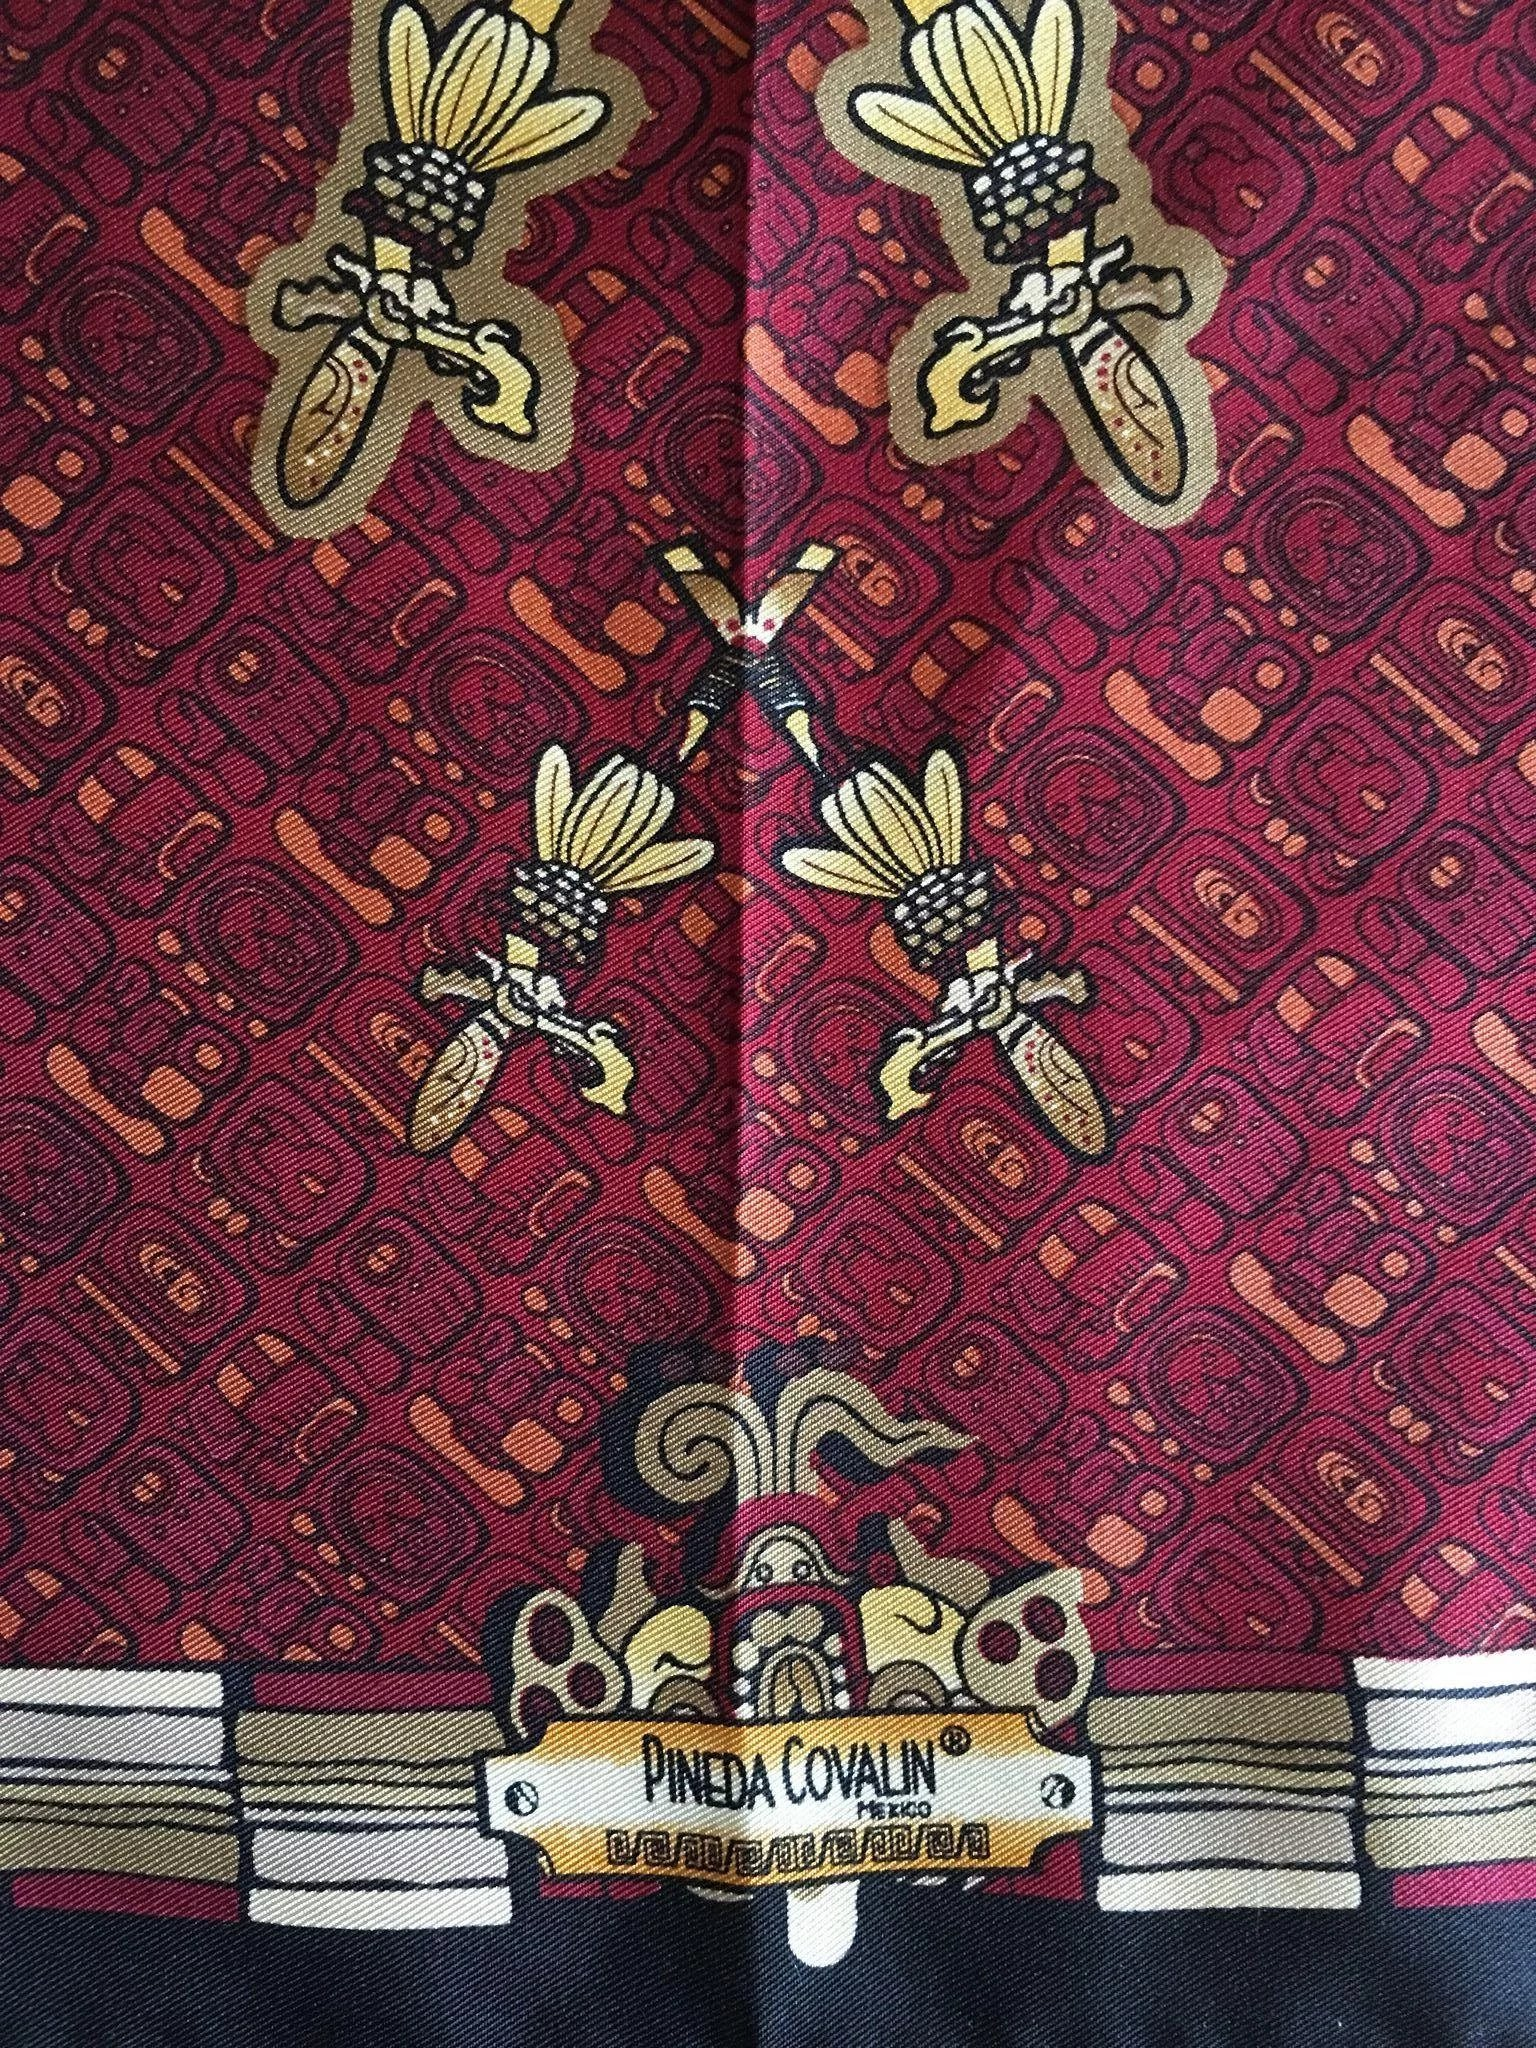 St Louis Taxi >> Pineda Covalin silk scarf aztec- Mexico - ancient mayan writing script : Mademoiselle Taxi ...